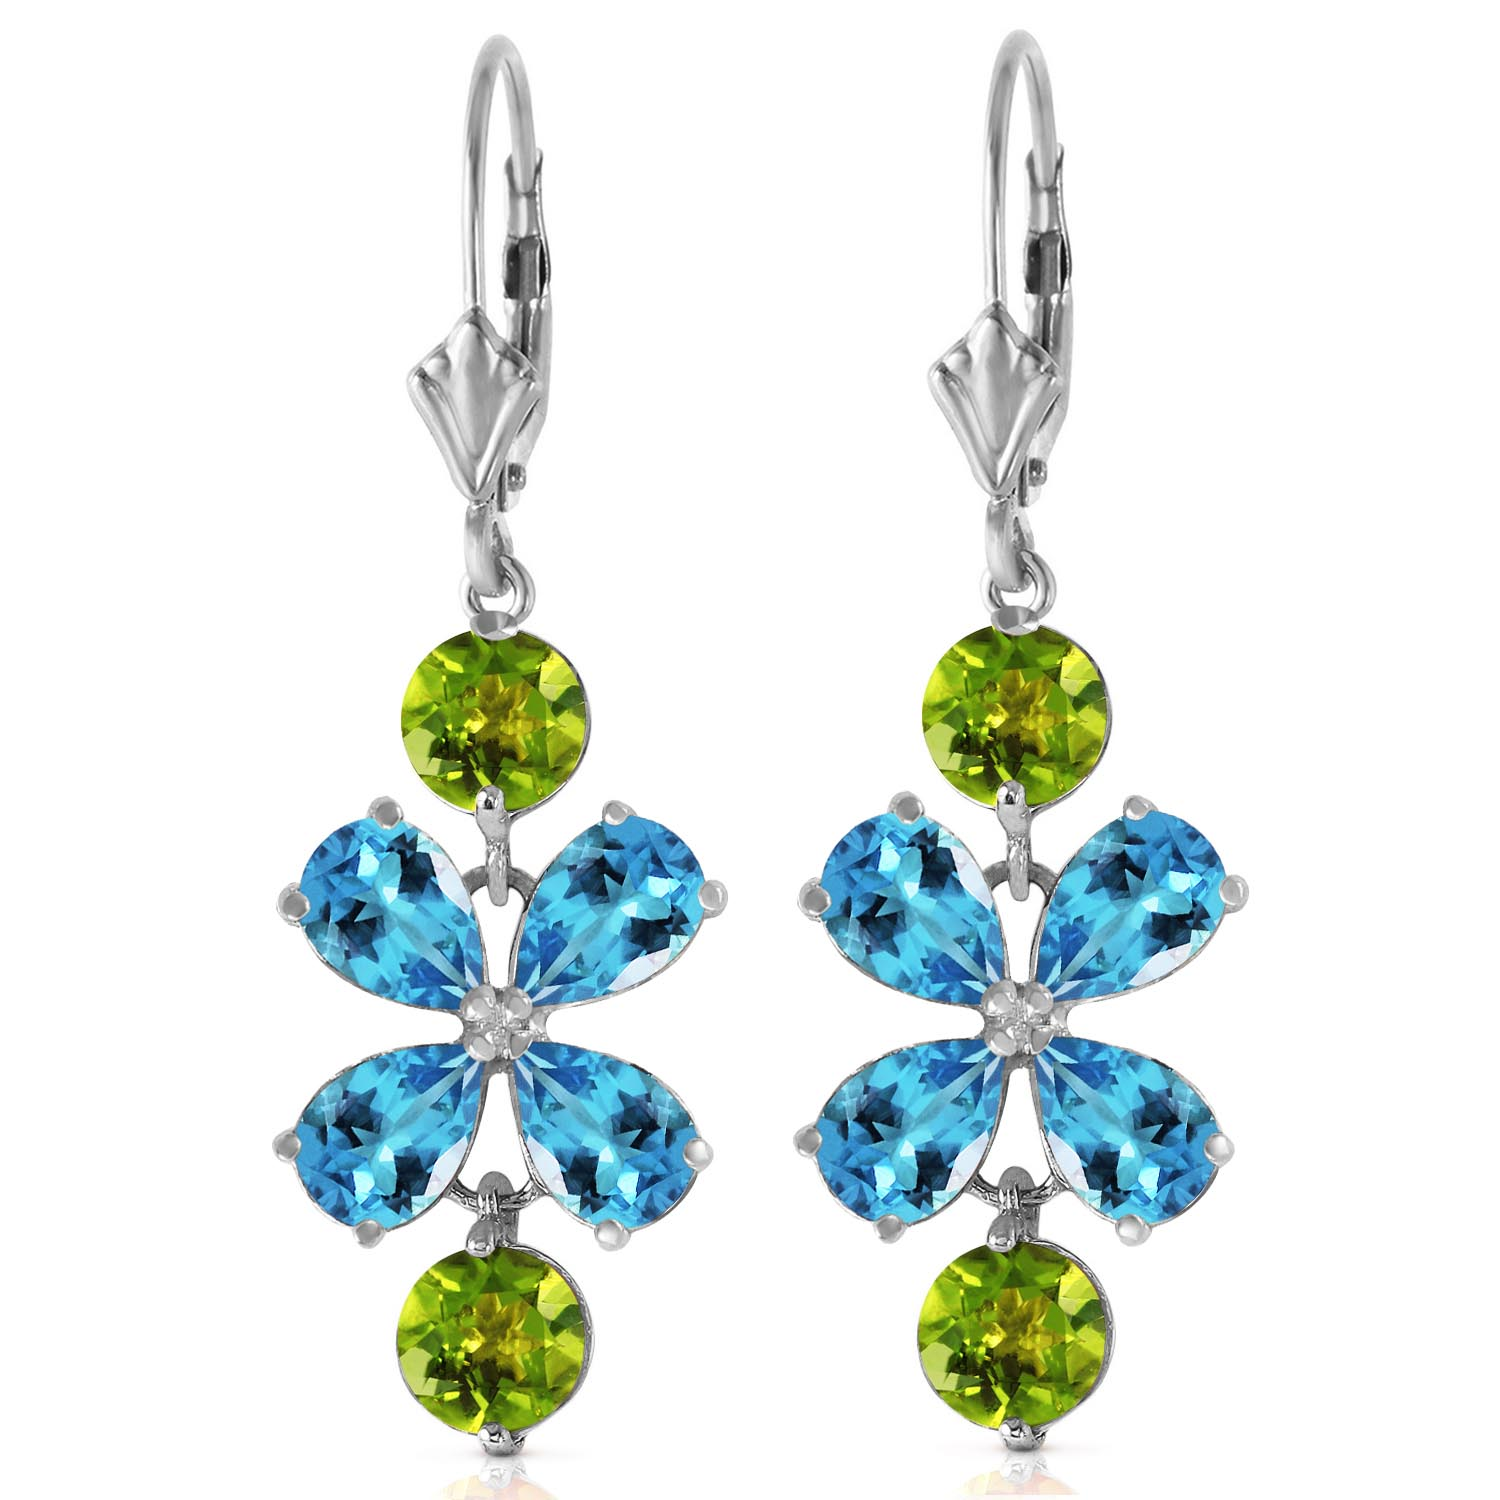 Blue Topaz and Peridot Blossom Drop Earrings 5.32ctw in 9ct White Gold